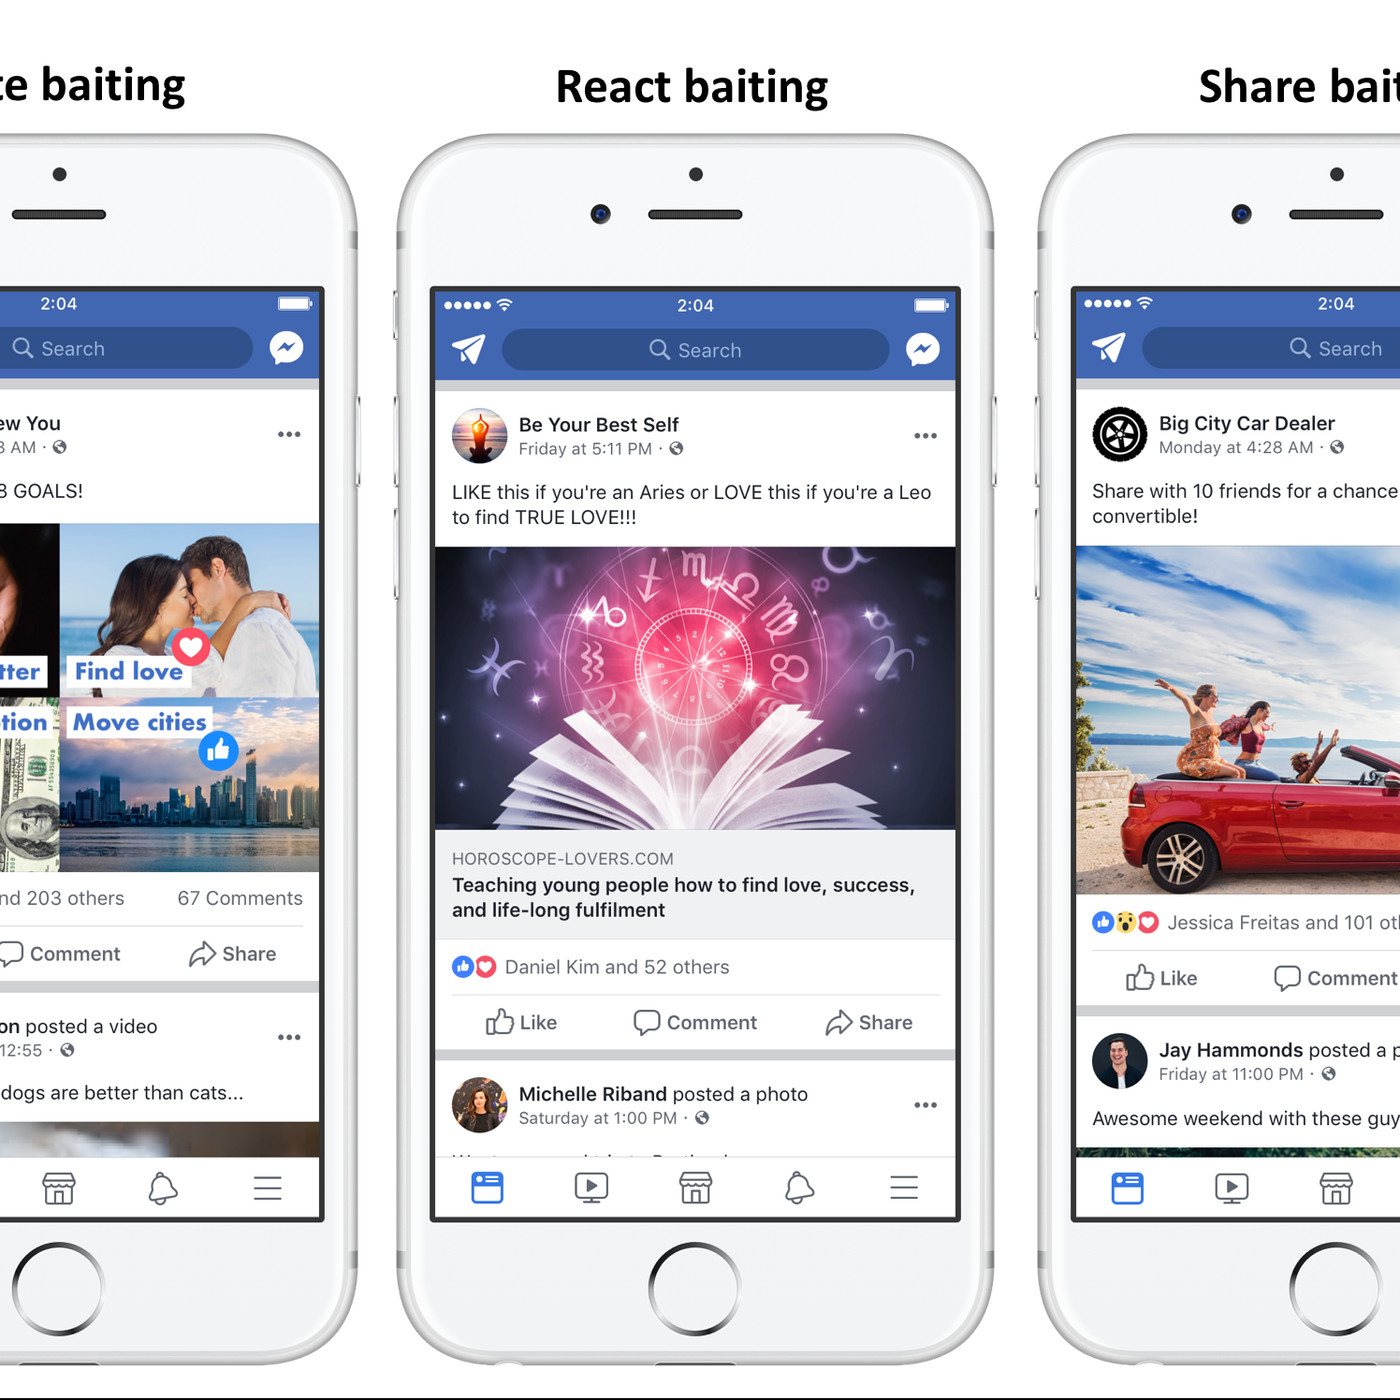 Facebook is clamping down on posts that ask people for 'Likes' or